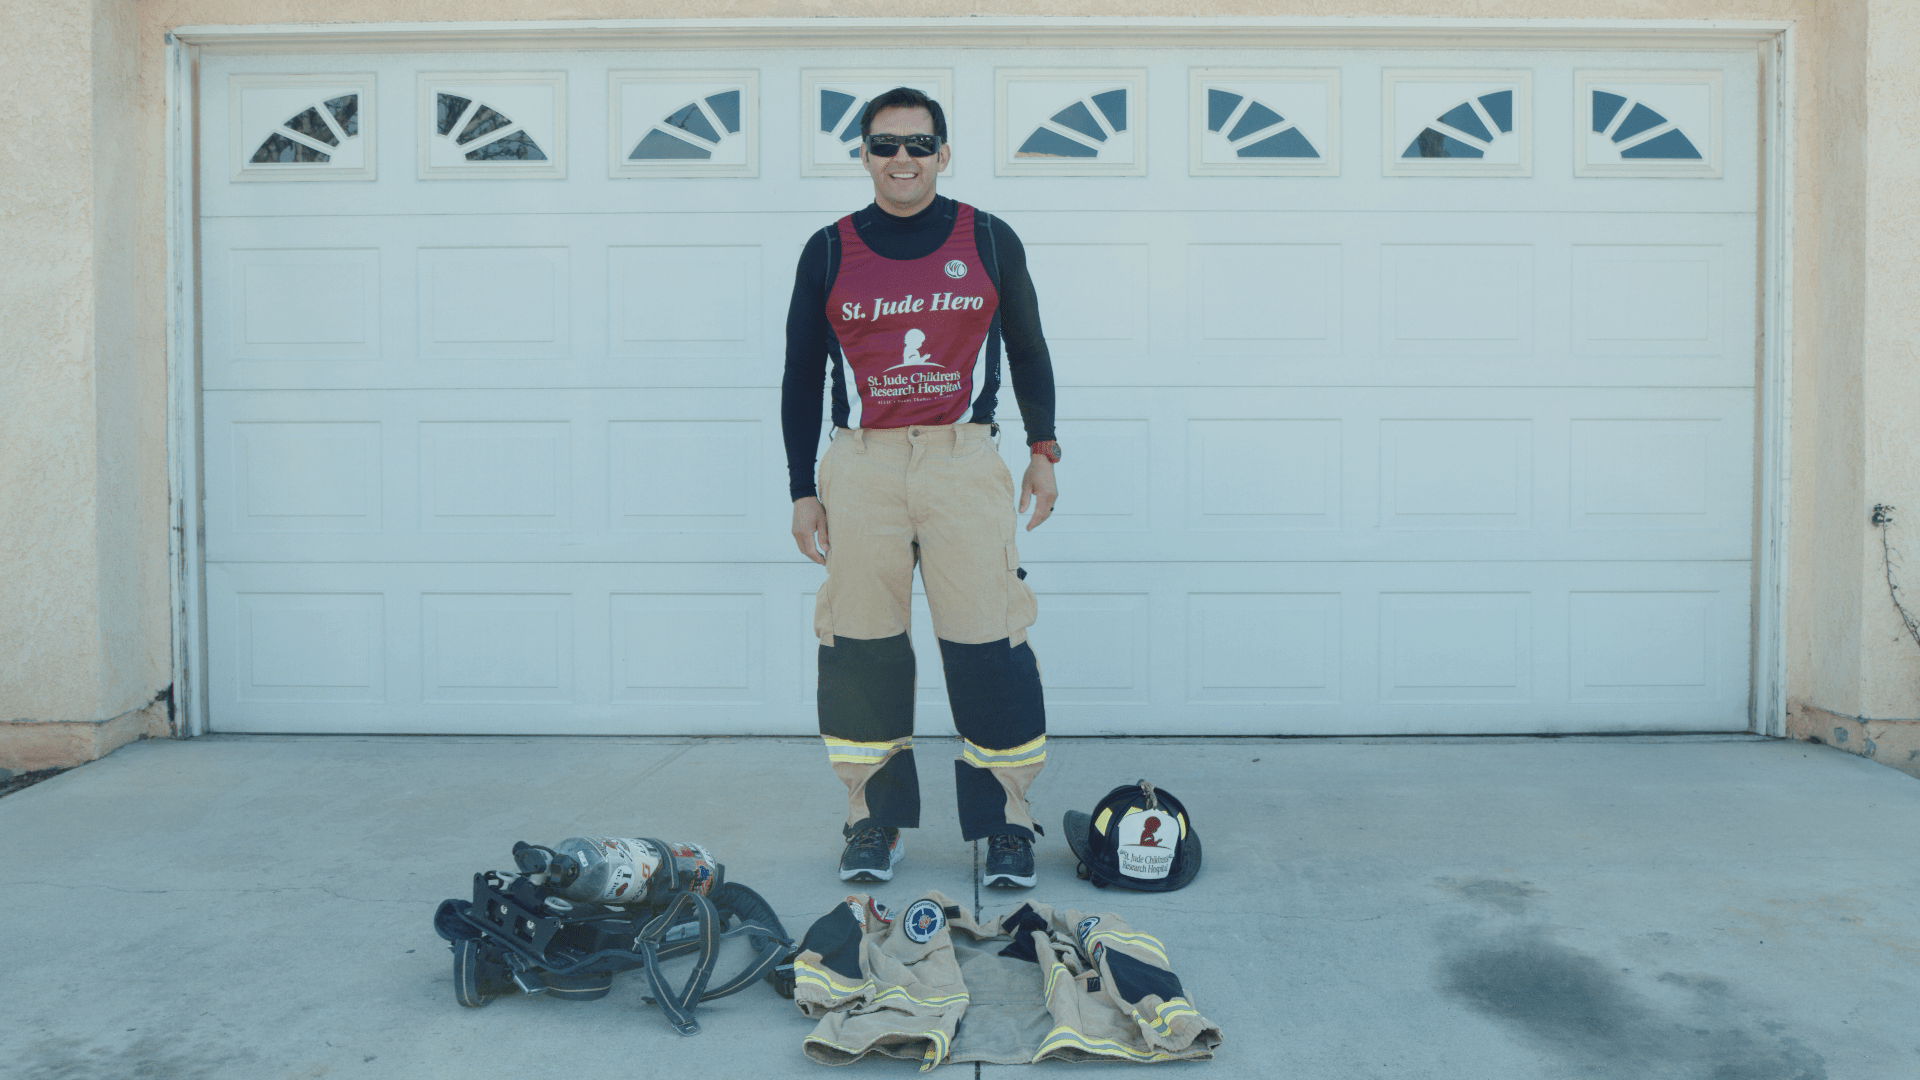 Jose Zambrano demonstrating his firefighter gear.